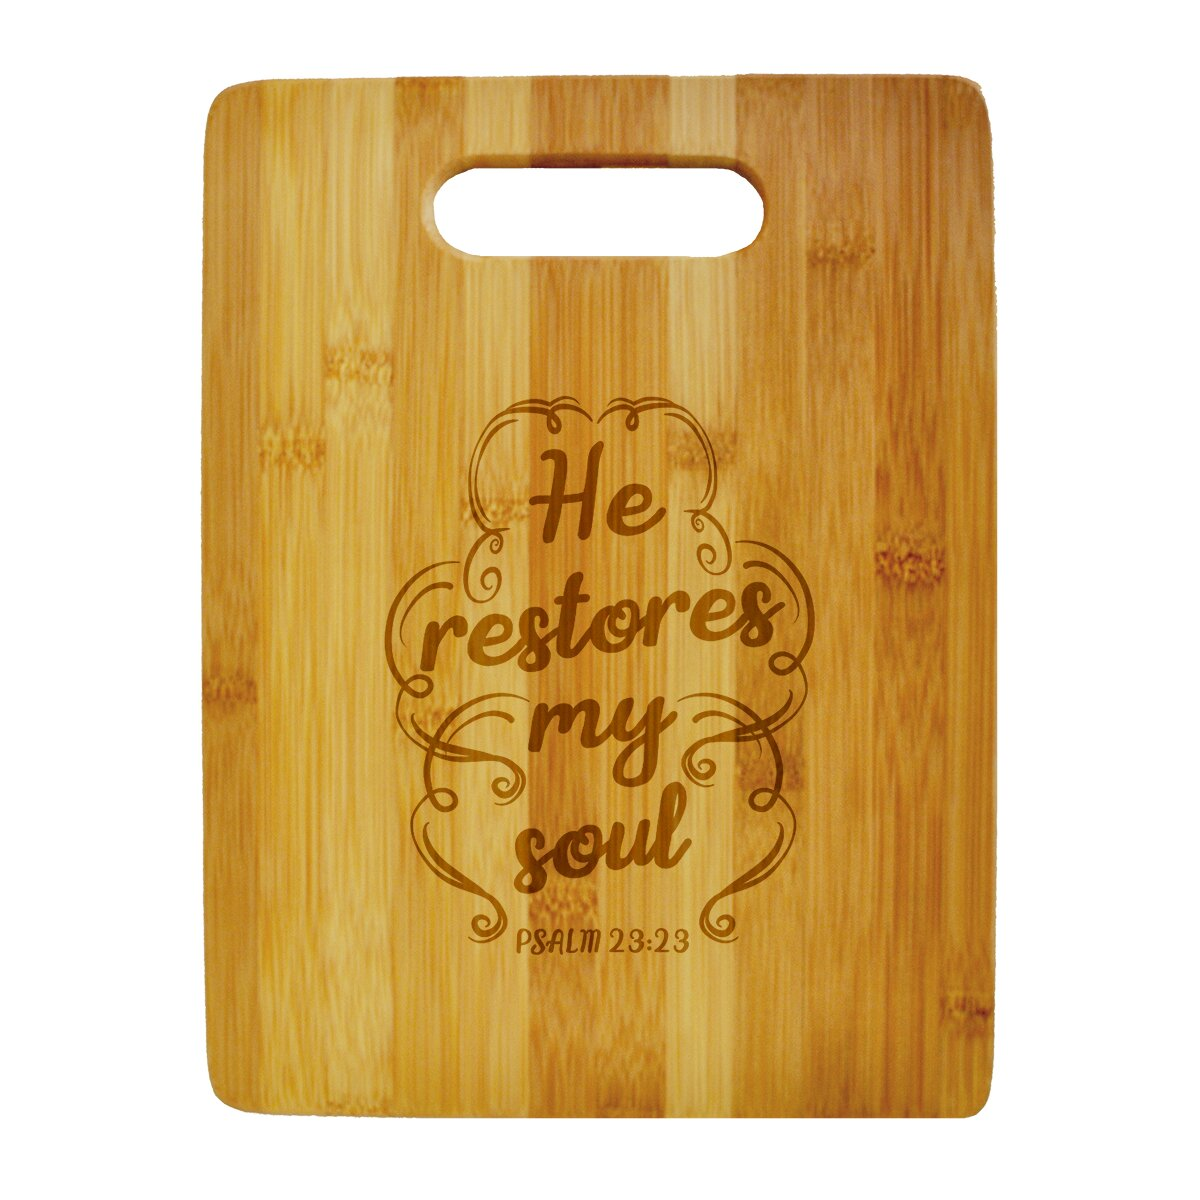 Personalized State Shape Cutting Board Multiple Sizes /& Colors Available Tempered Glass Cutting Board Dishwasher Safe Custom Cutting Board